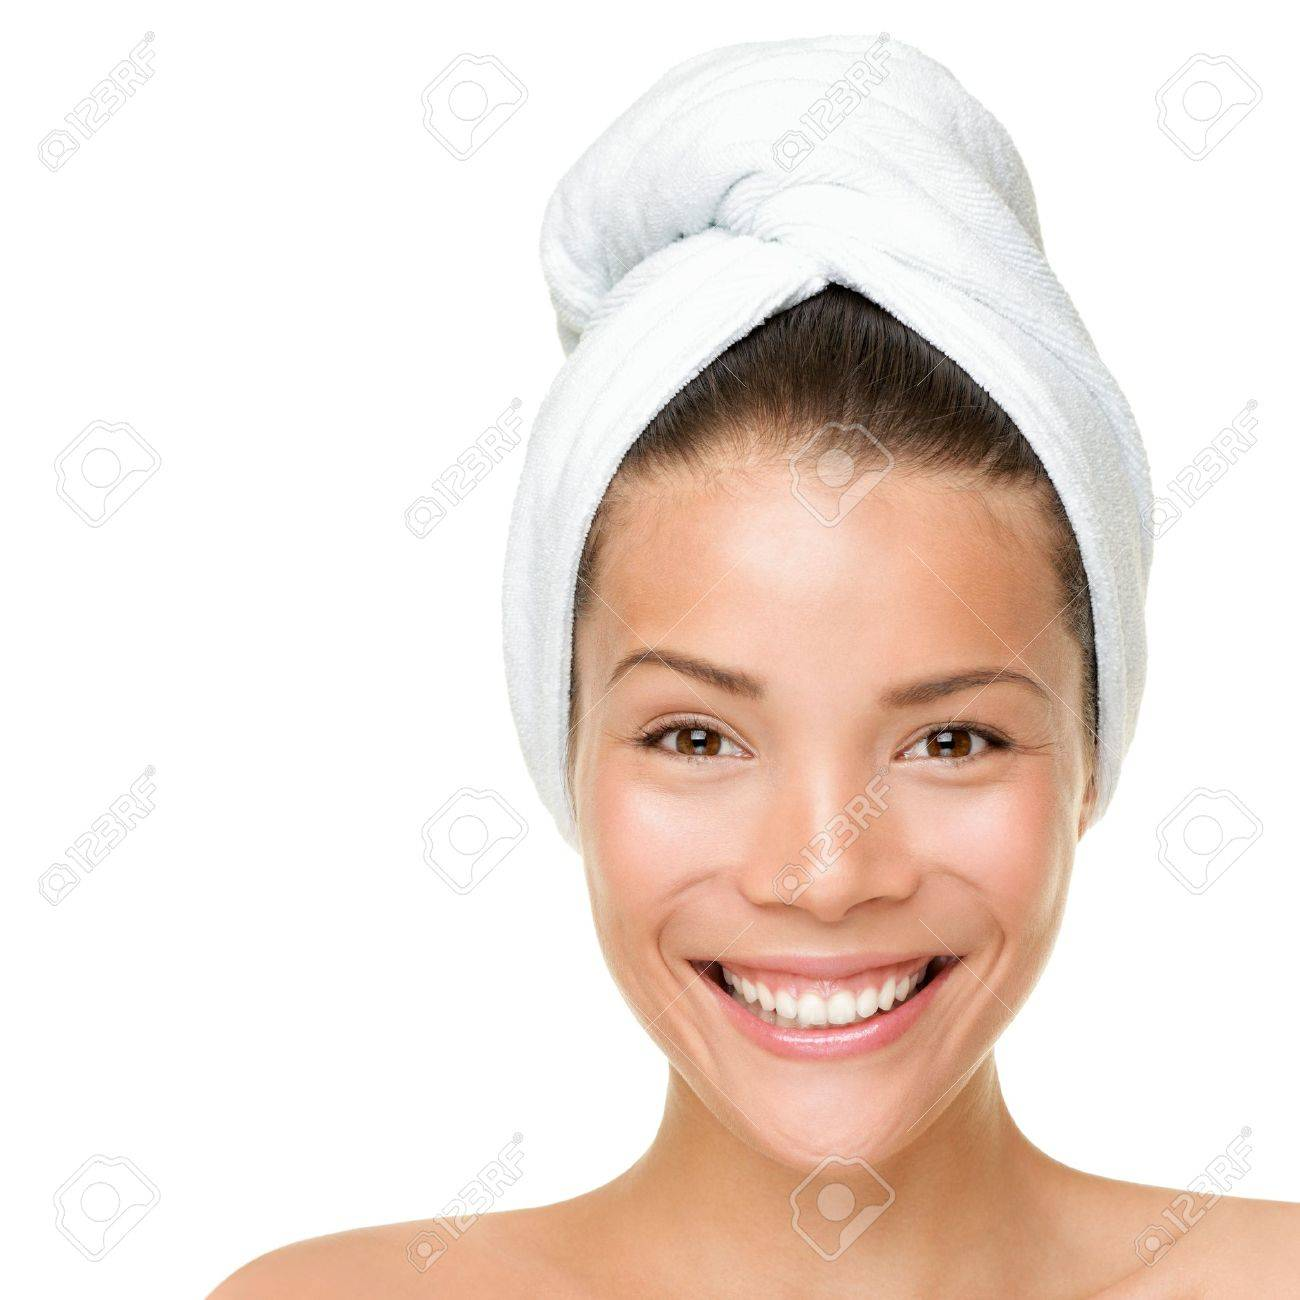 Beauty spa treatment woman wearing towel drying hair. Closeup portrait of happy smiling beautiful Caucasian / Asian female model isolated on white background. Stock Photo - 10465308